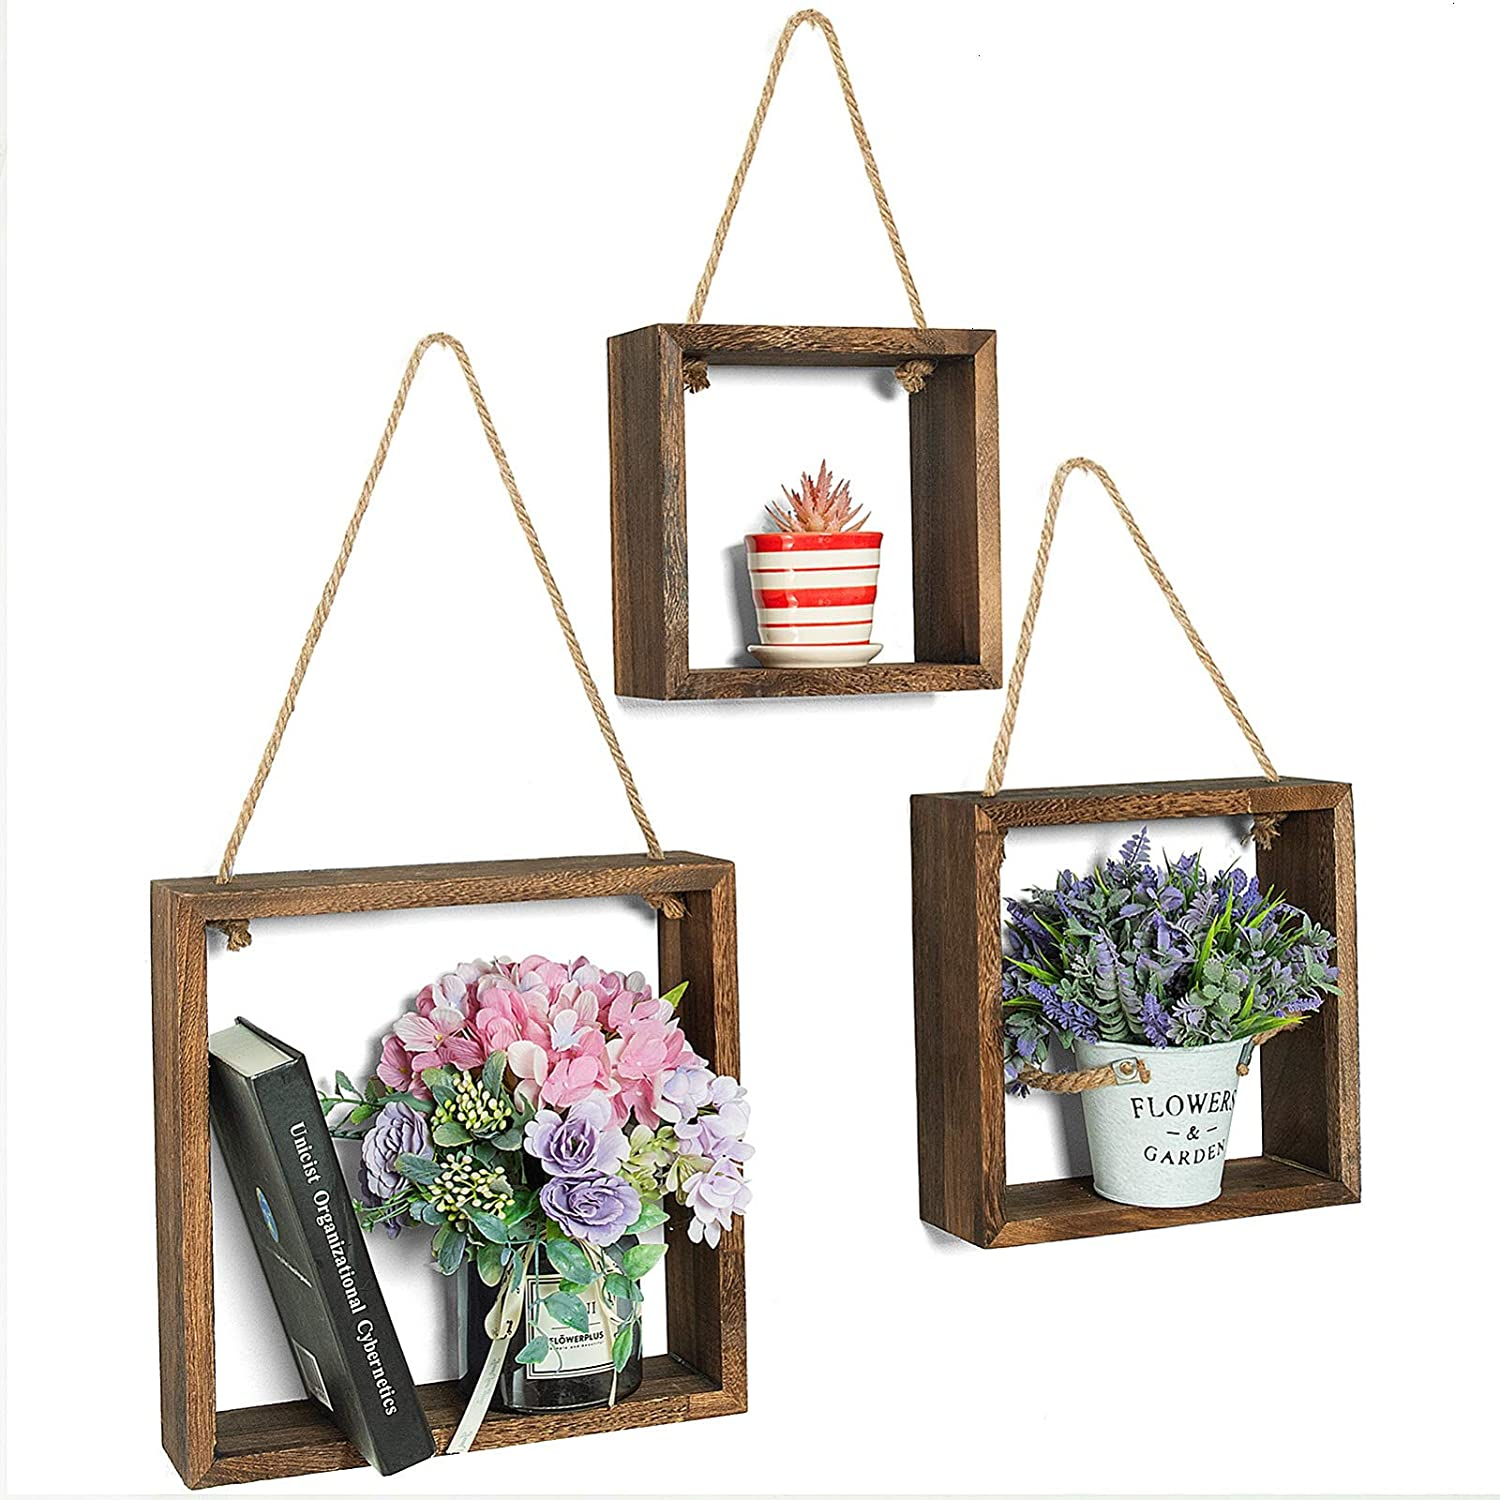 COYMOS Hanging Shelves Square Hanging Plant Shelf Indoor Wall Hanging Wall Shelves for Bedroom Rustic Wall Decor for Office Living Room Bathroom Kitchen Set of 3- Brown